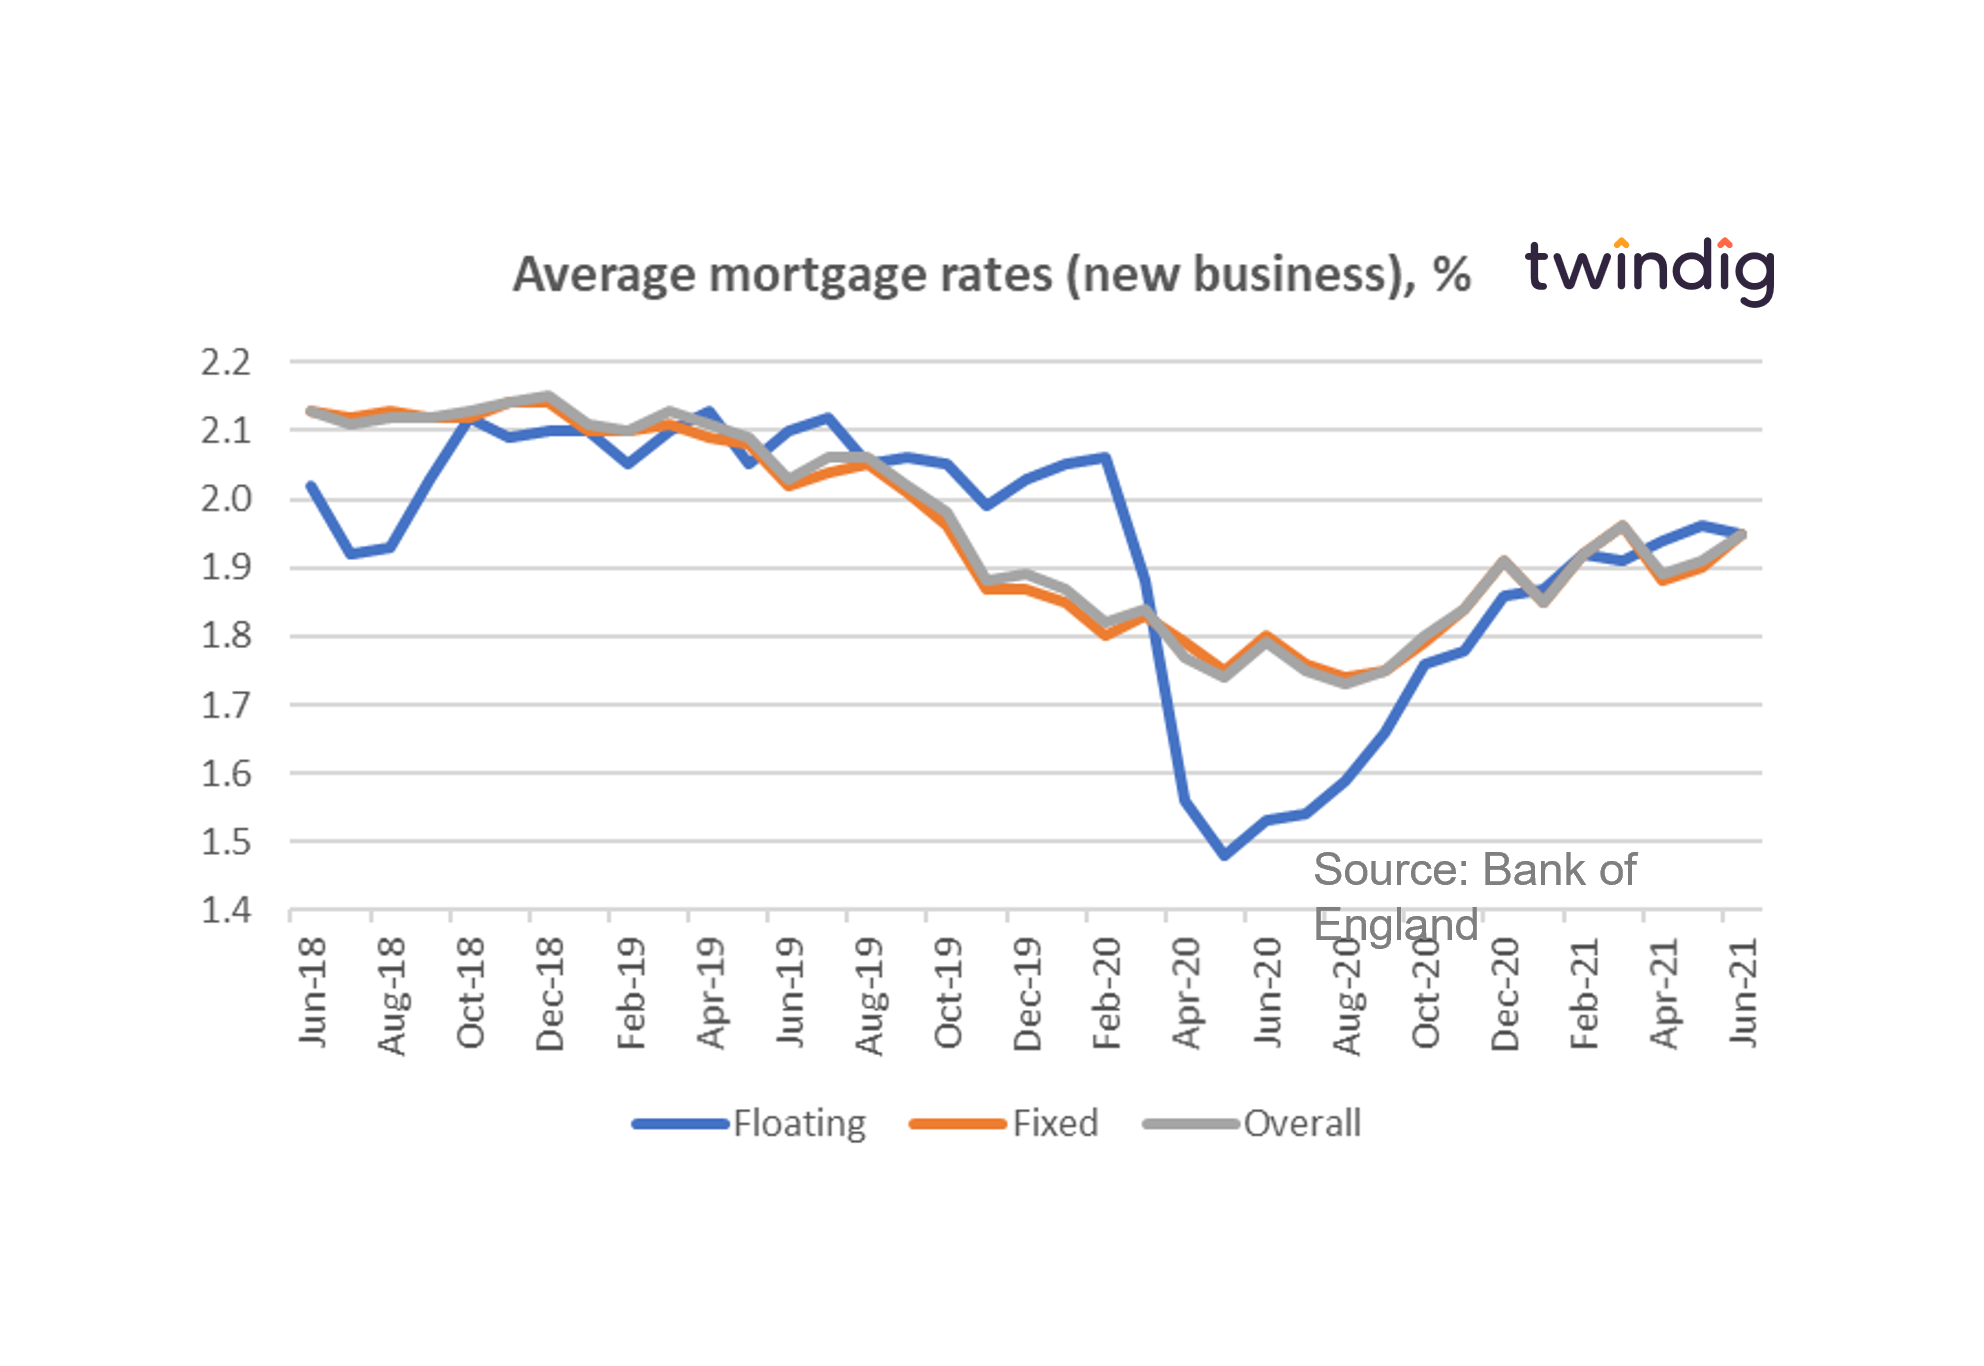 average mortgage rates chart graph June 18 to June 21 twindig anthony codling